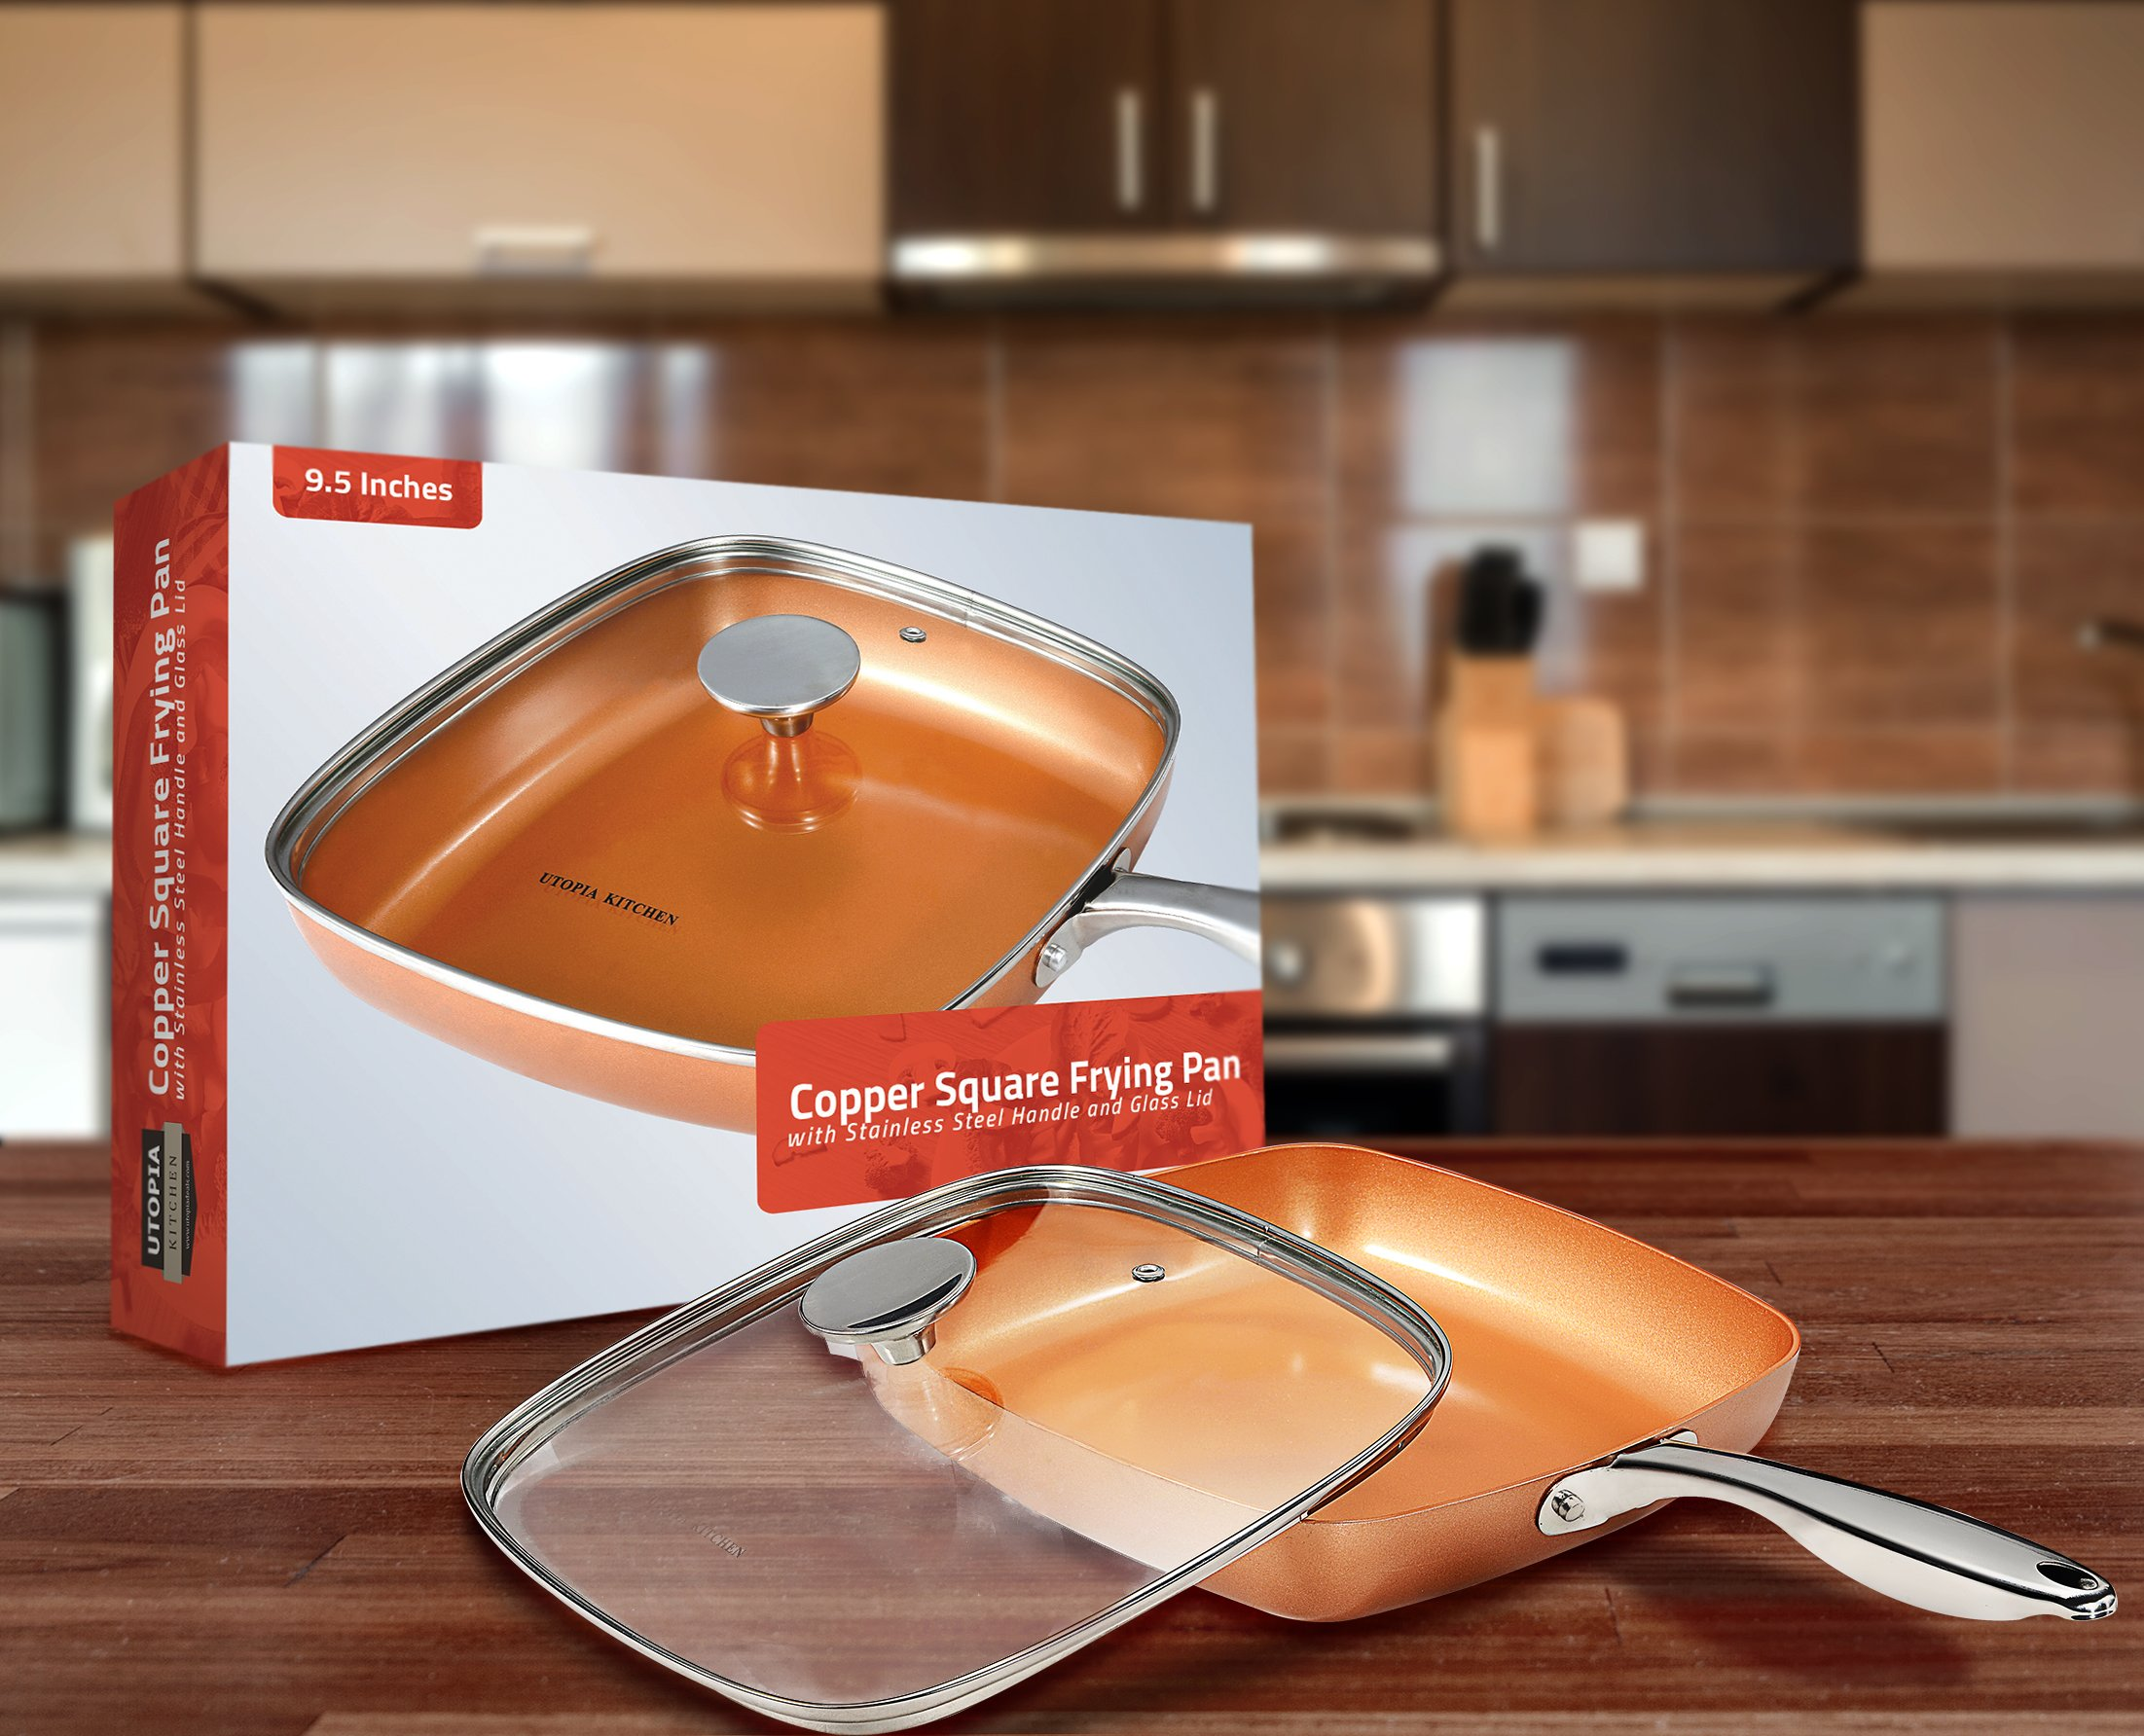 Utopia Kitchen Induction Bottom 9.5 Inches Copper Nonstick Square Frying Pan with Glass Lid and Stainless Steel Handle - Multipurpose Use for Home Kitchen and Restaurant by Utopia Kitchen (Image #2)